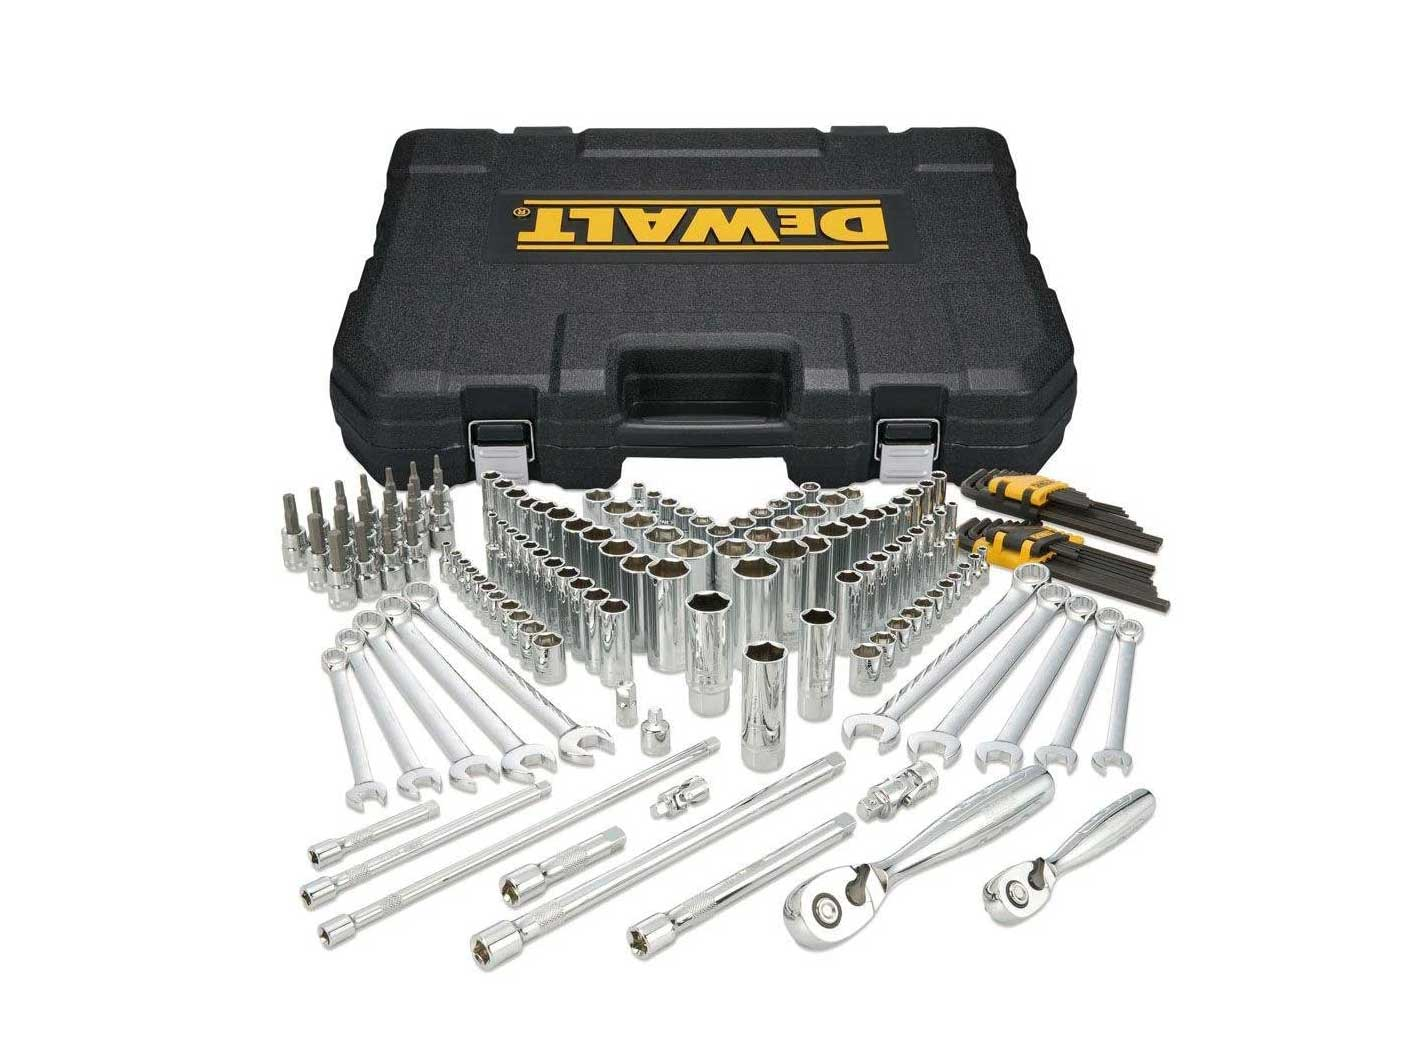 DEWALT Mechanics Tools Kit and Socket Set, 156-Piece